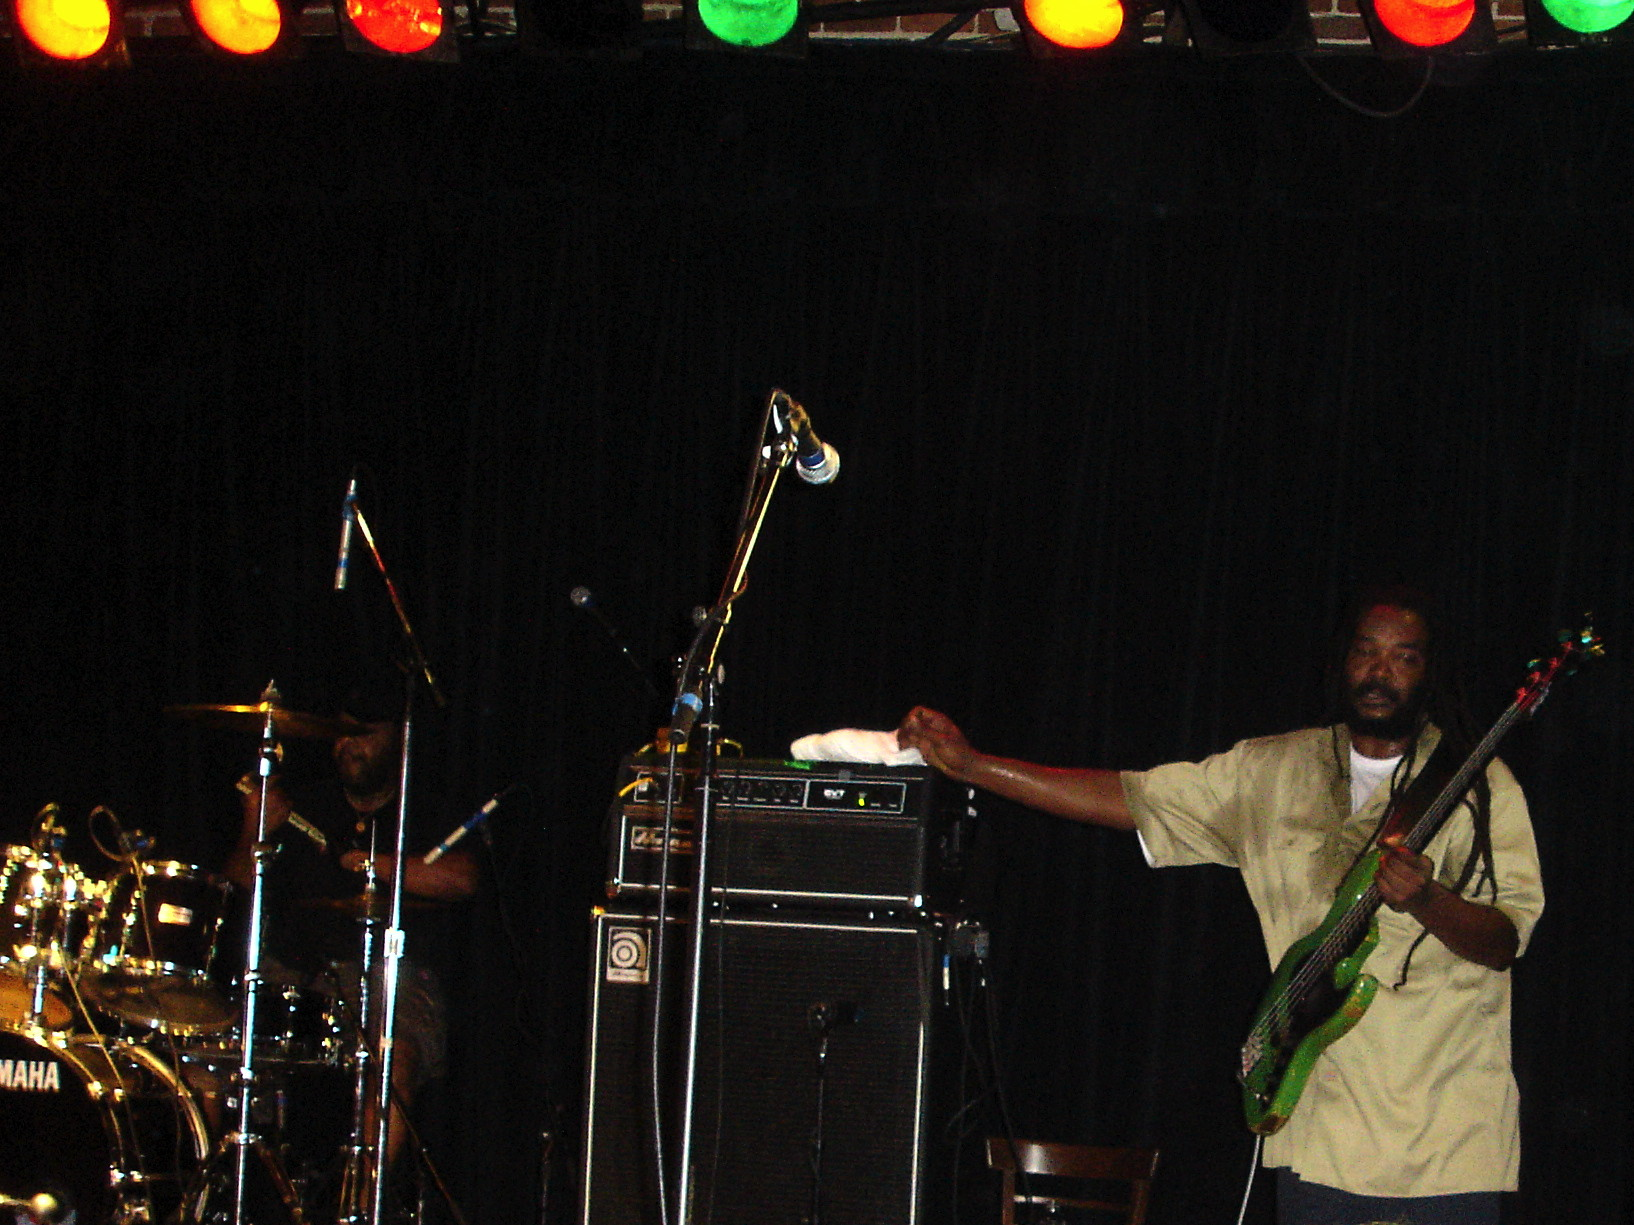 File:Bad Brains-11.jpg - Wikimedia Commons